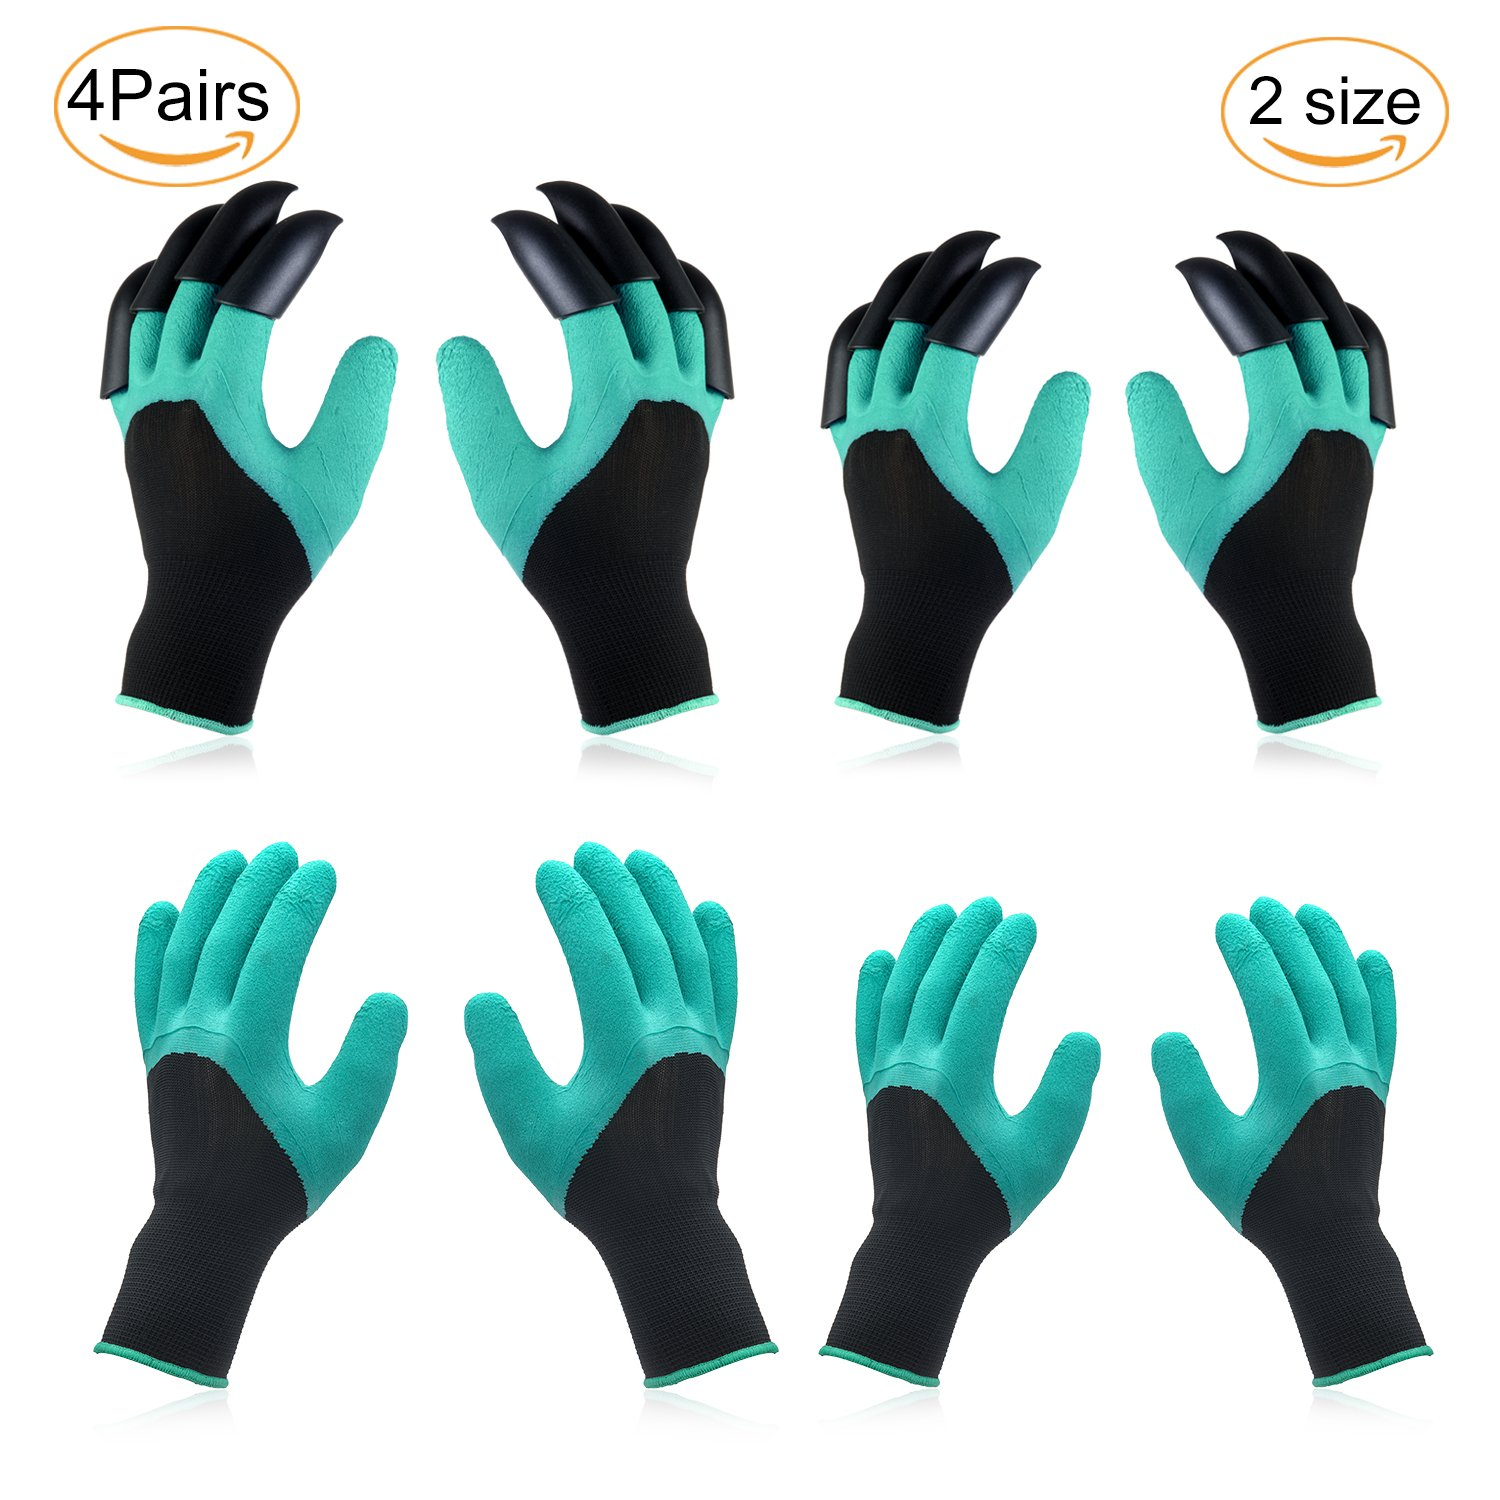 Garden Genie Gloves - 2018 4 Pairs 2 Size Garden Gloves with Claw For Women and  Men Plant, Dig Fix Including 2 Pairs Gloves with Claws, 2 Pairs Normal Gloves, Soft, Waterproof and Breathable